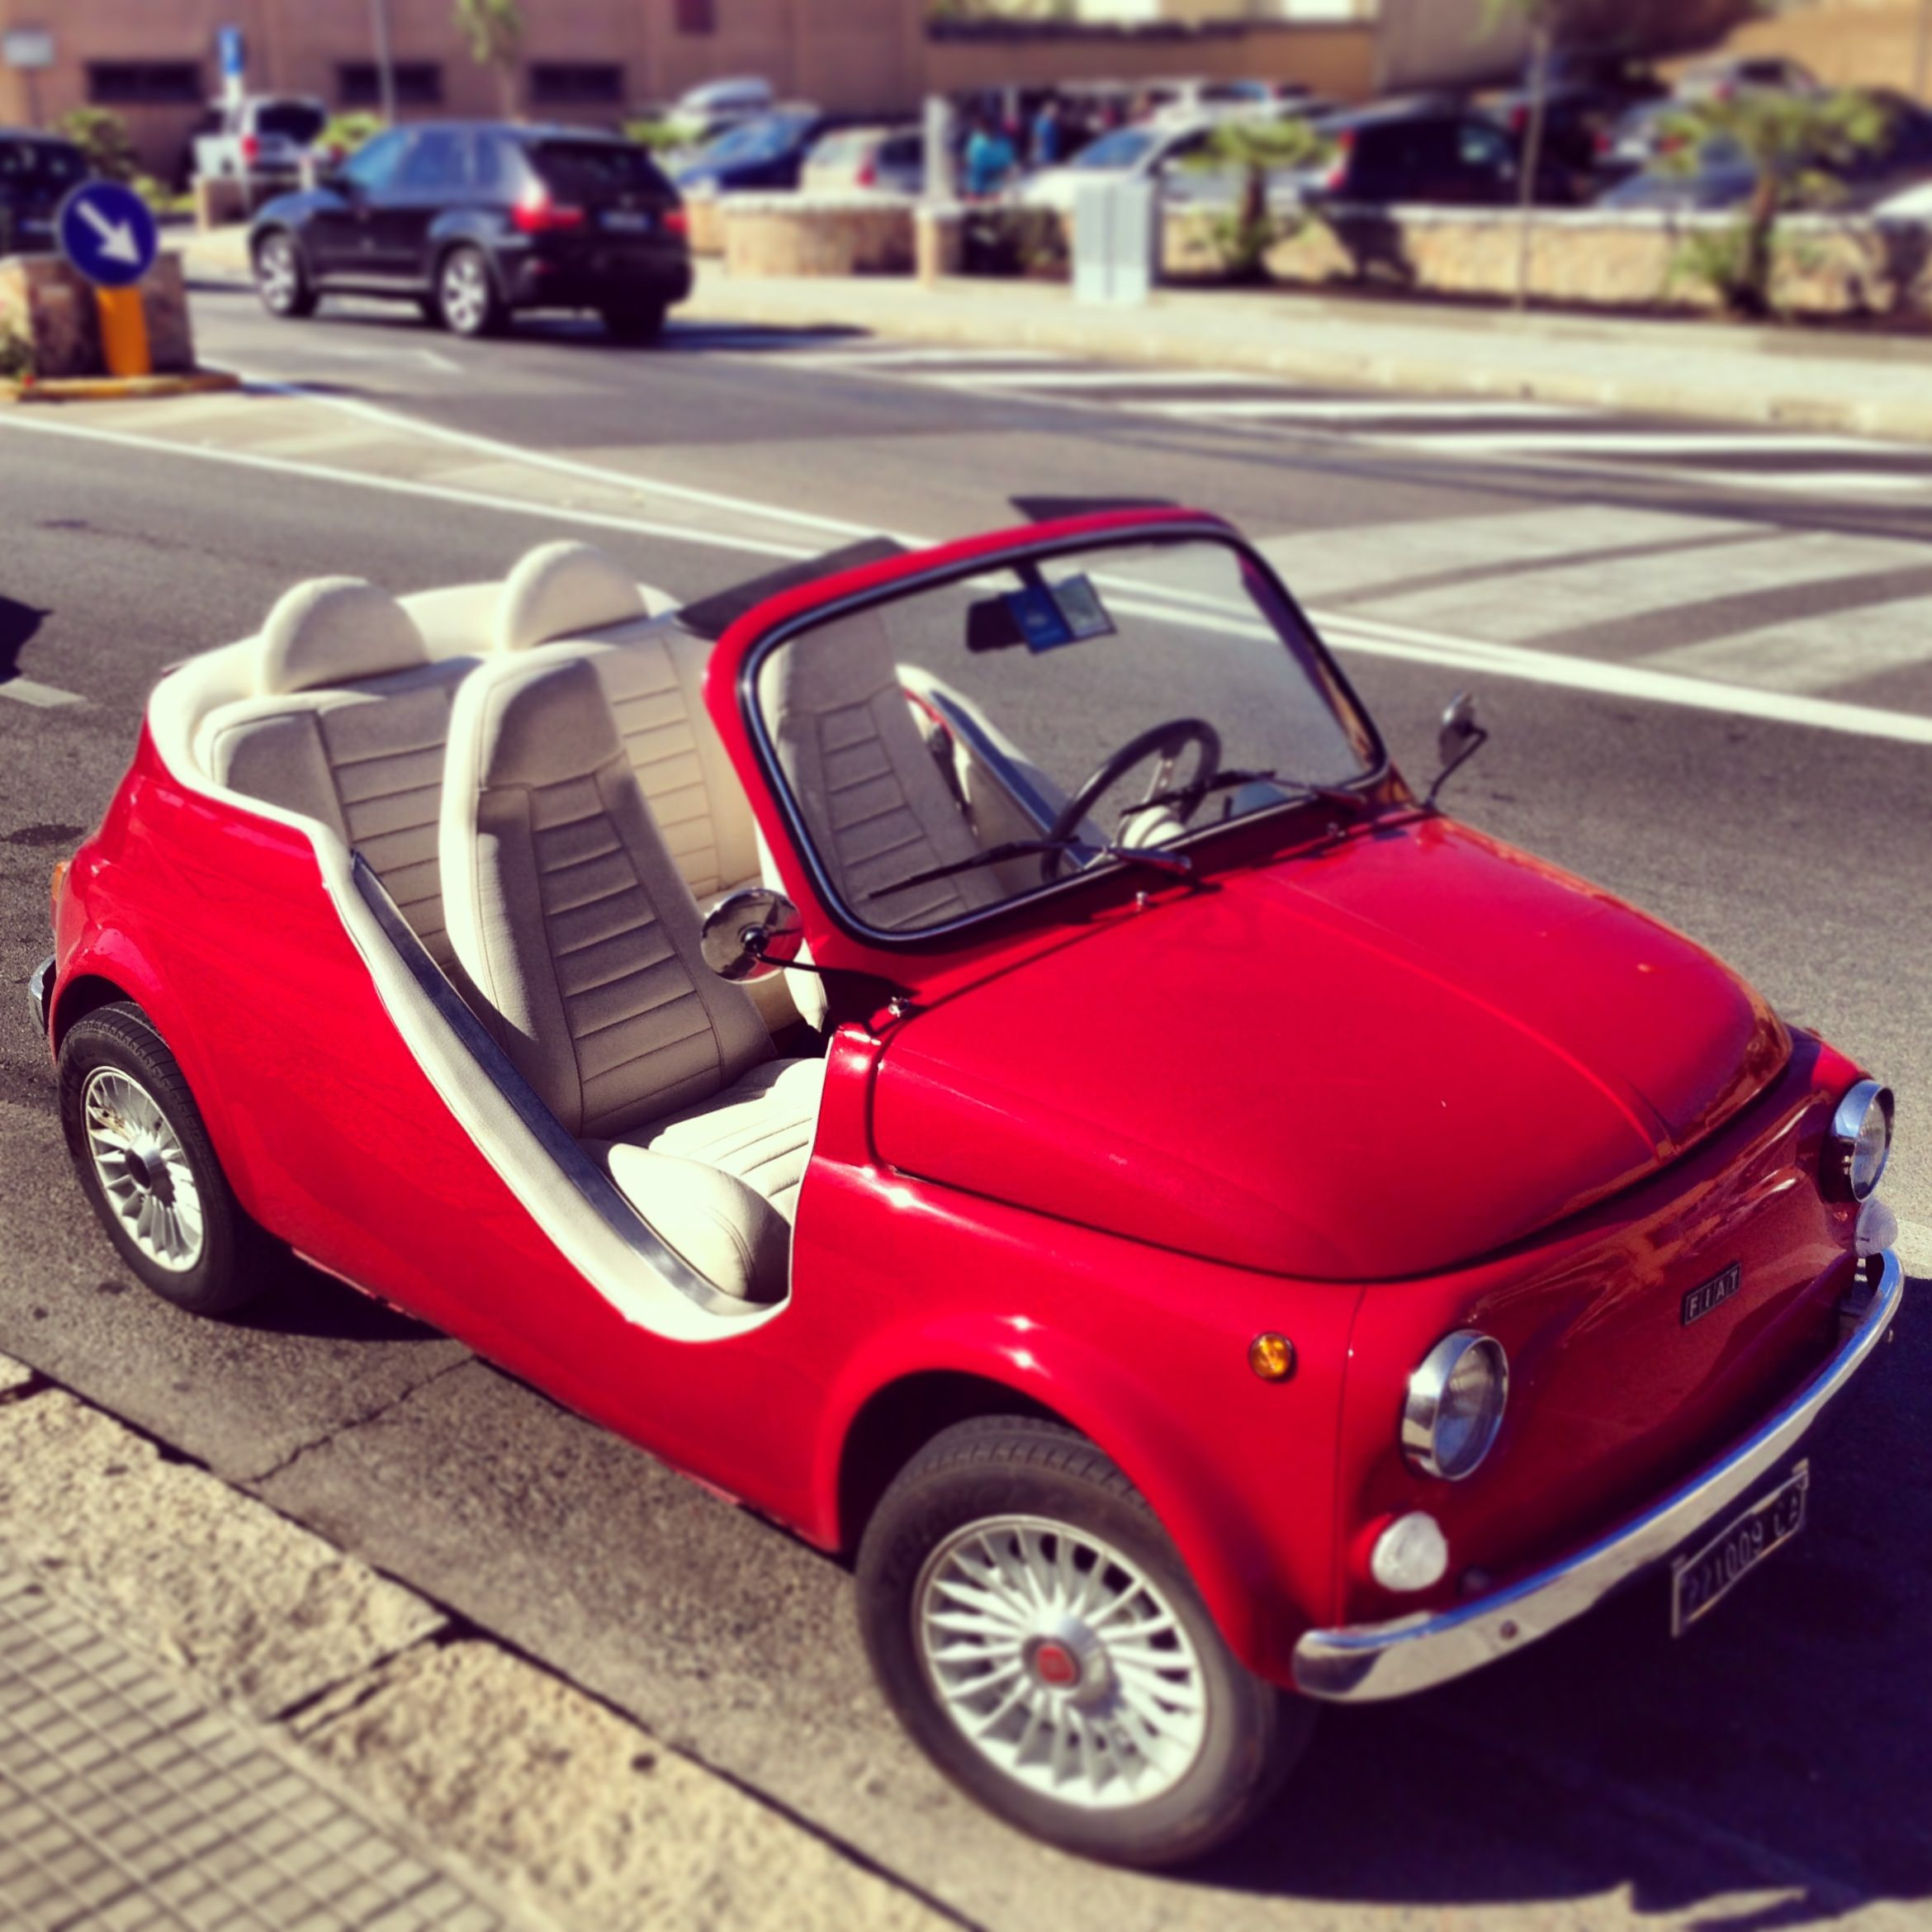 Vintage Fiat 500 Cabrio // Funny Ride | Cars I love | Pinterest ...